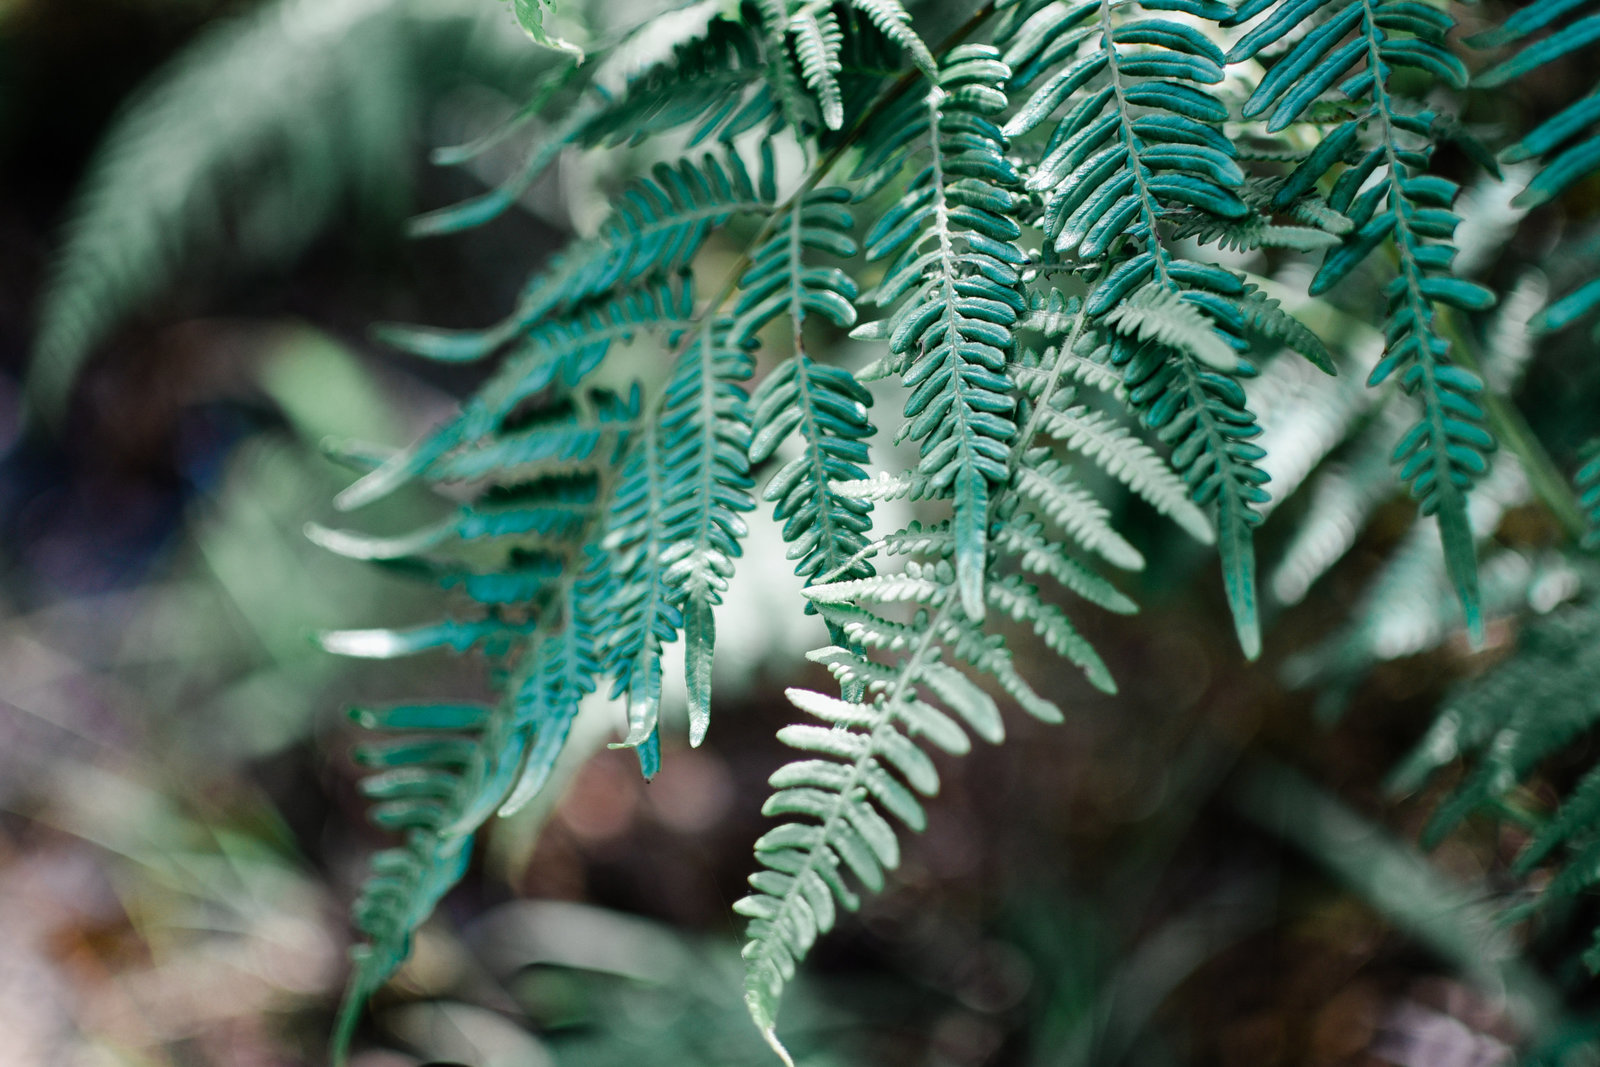 fern-leaf-lead-images (1 of 1)